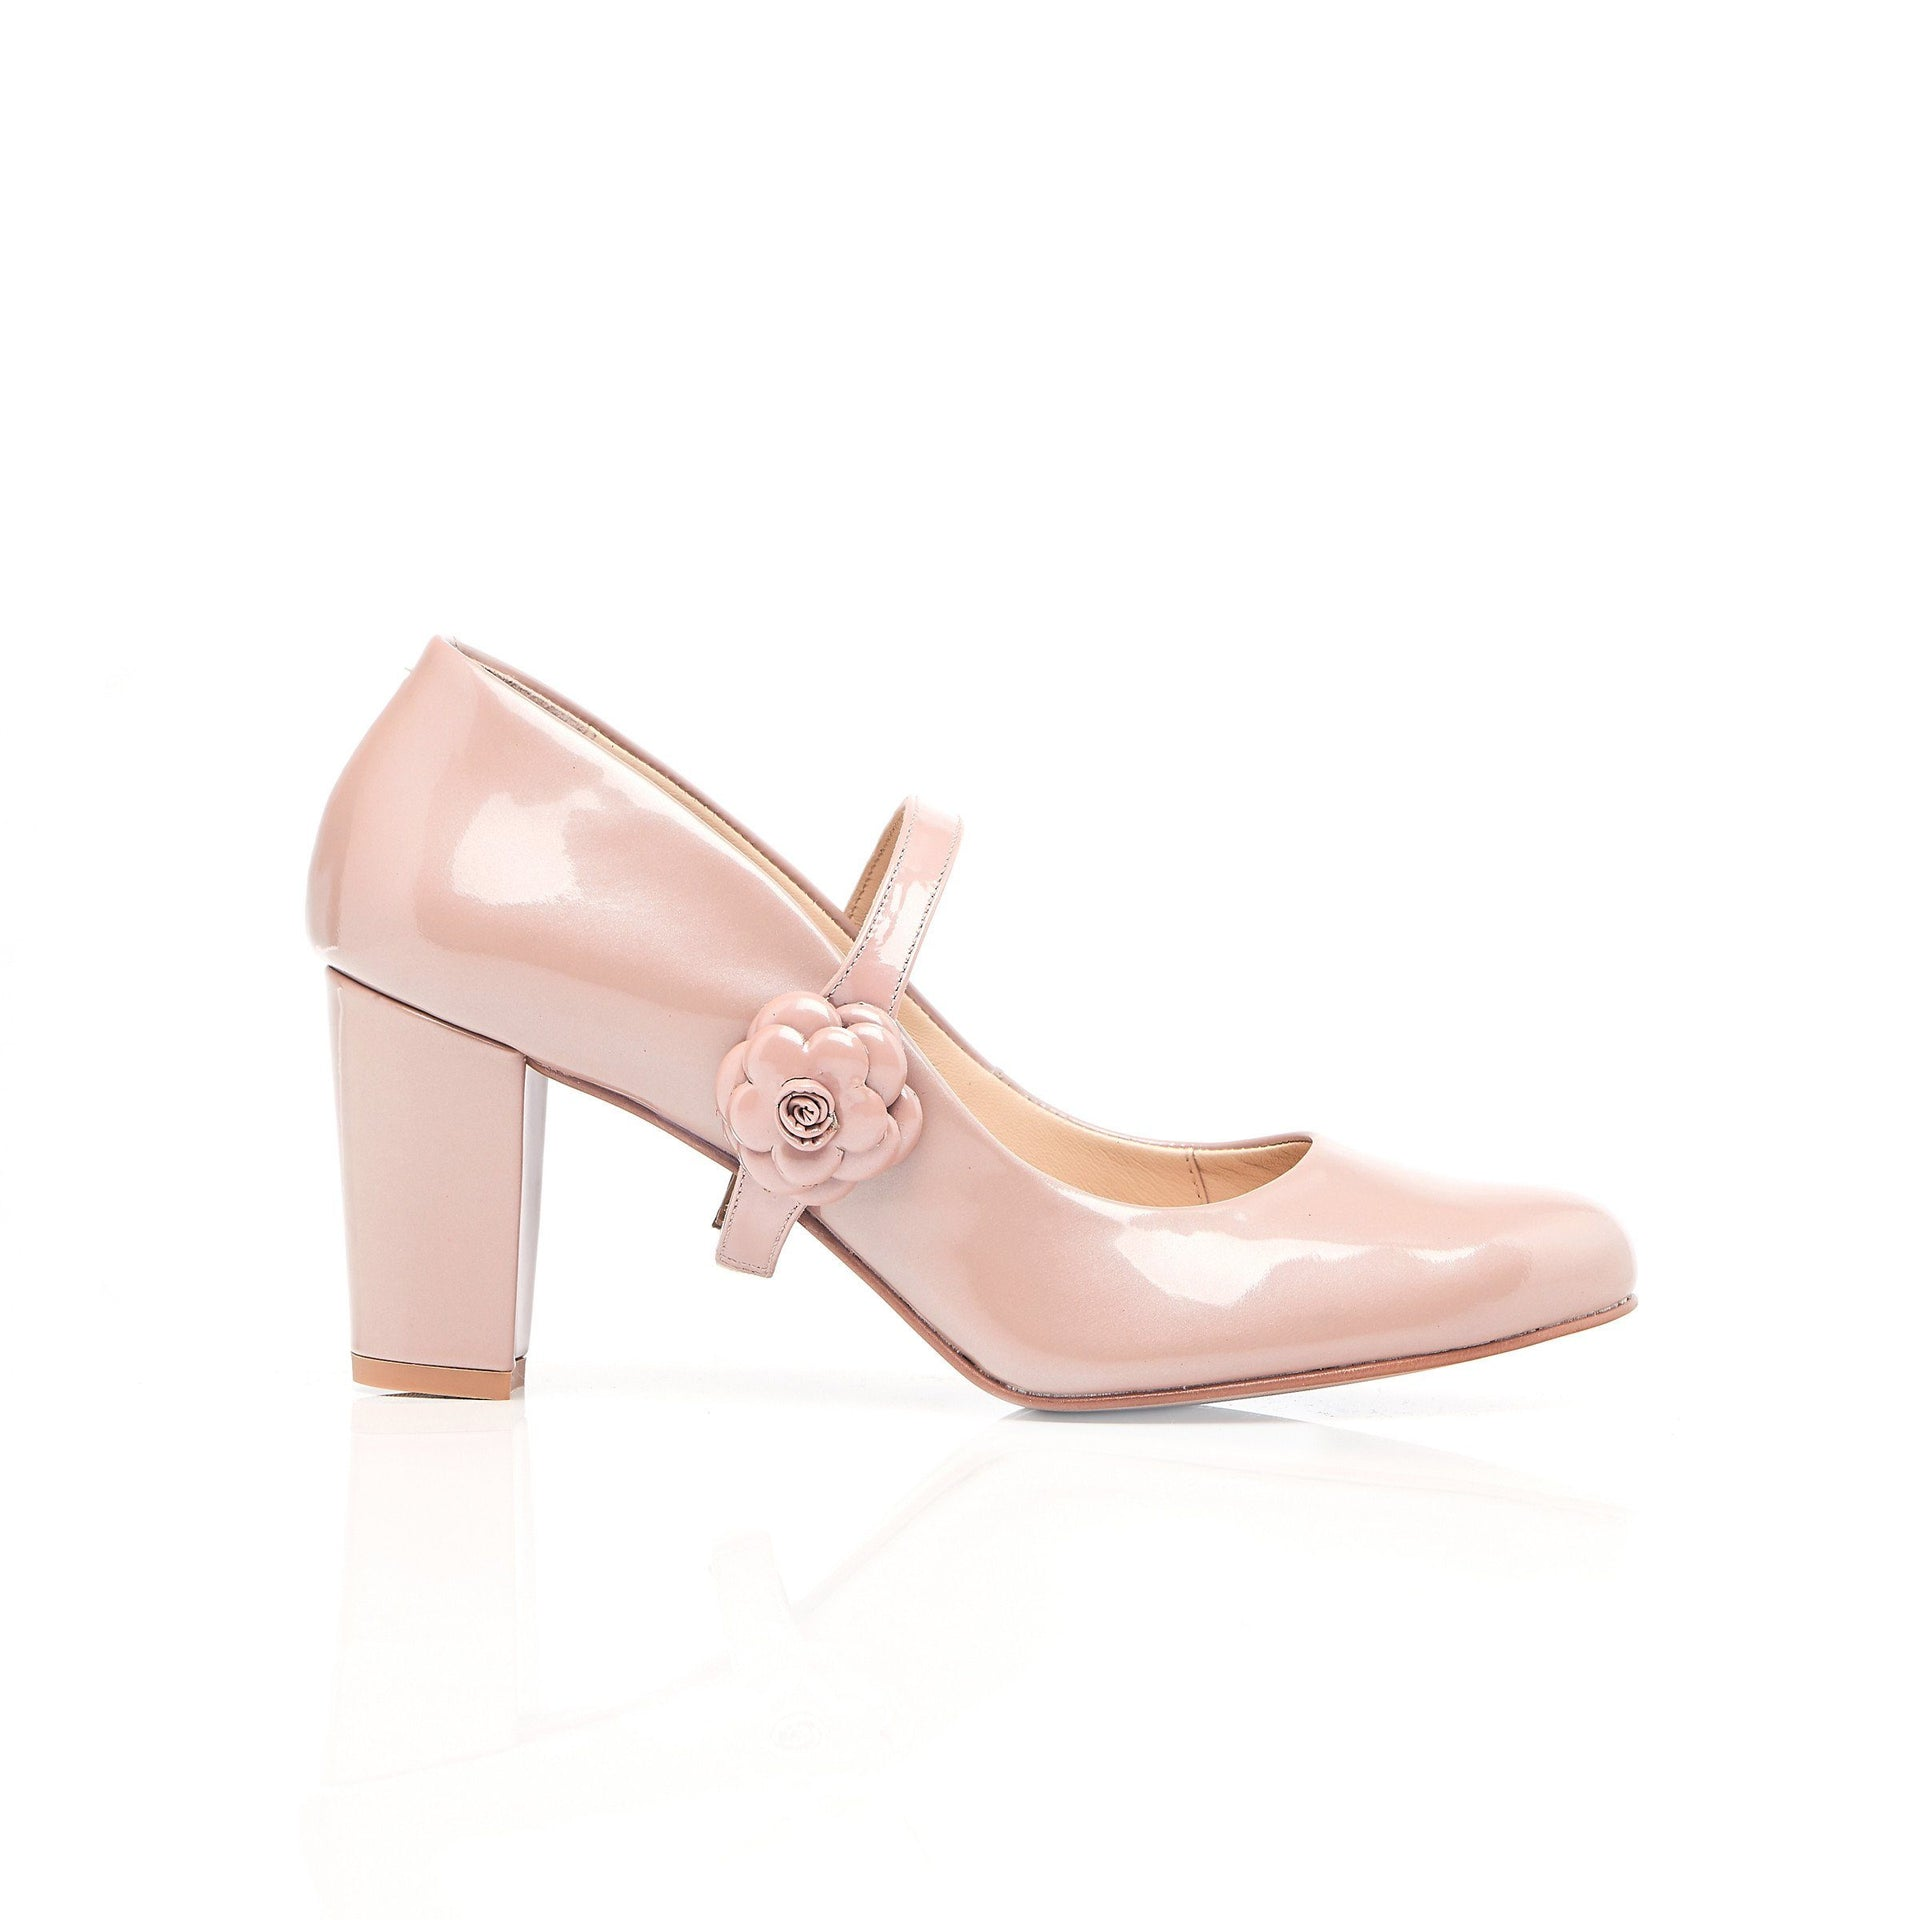 Nude Patent Leather heels with flowers